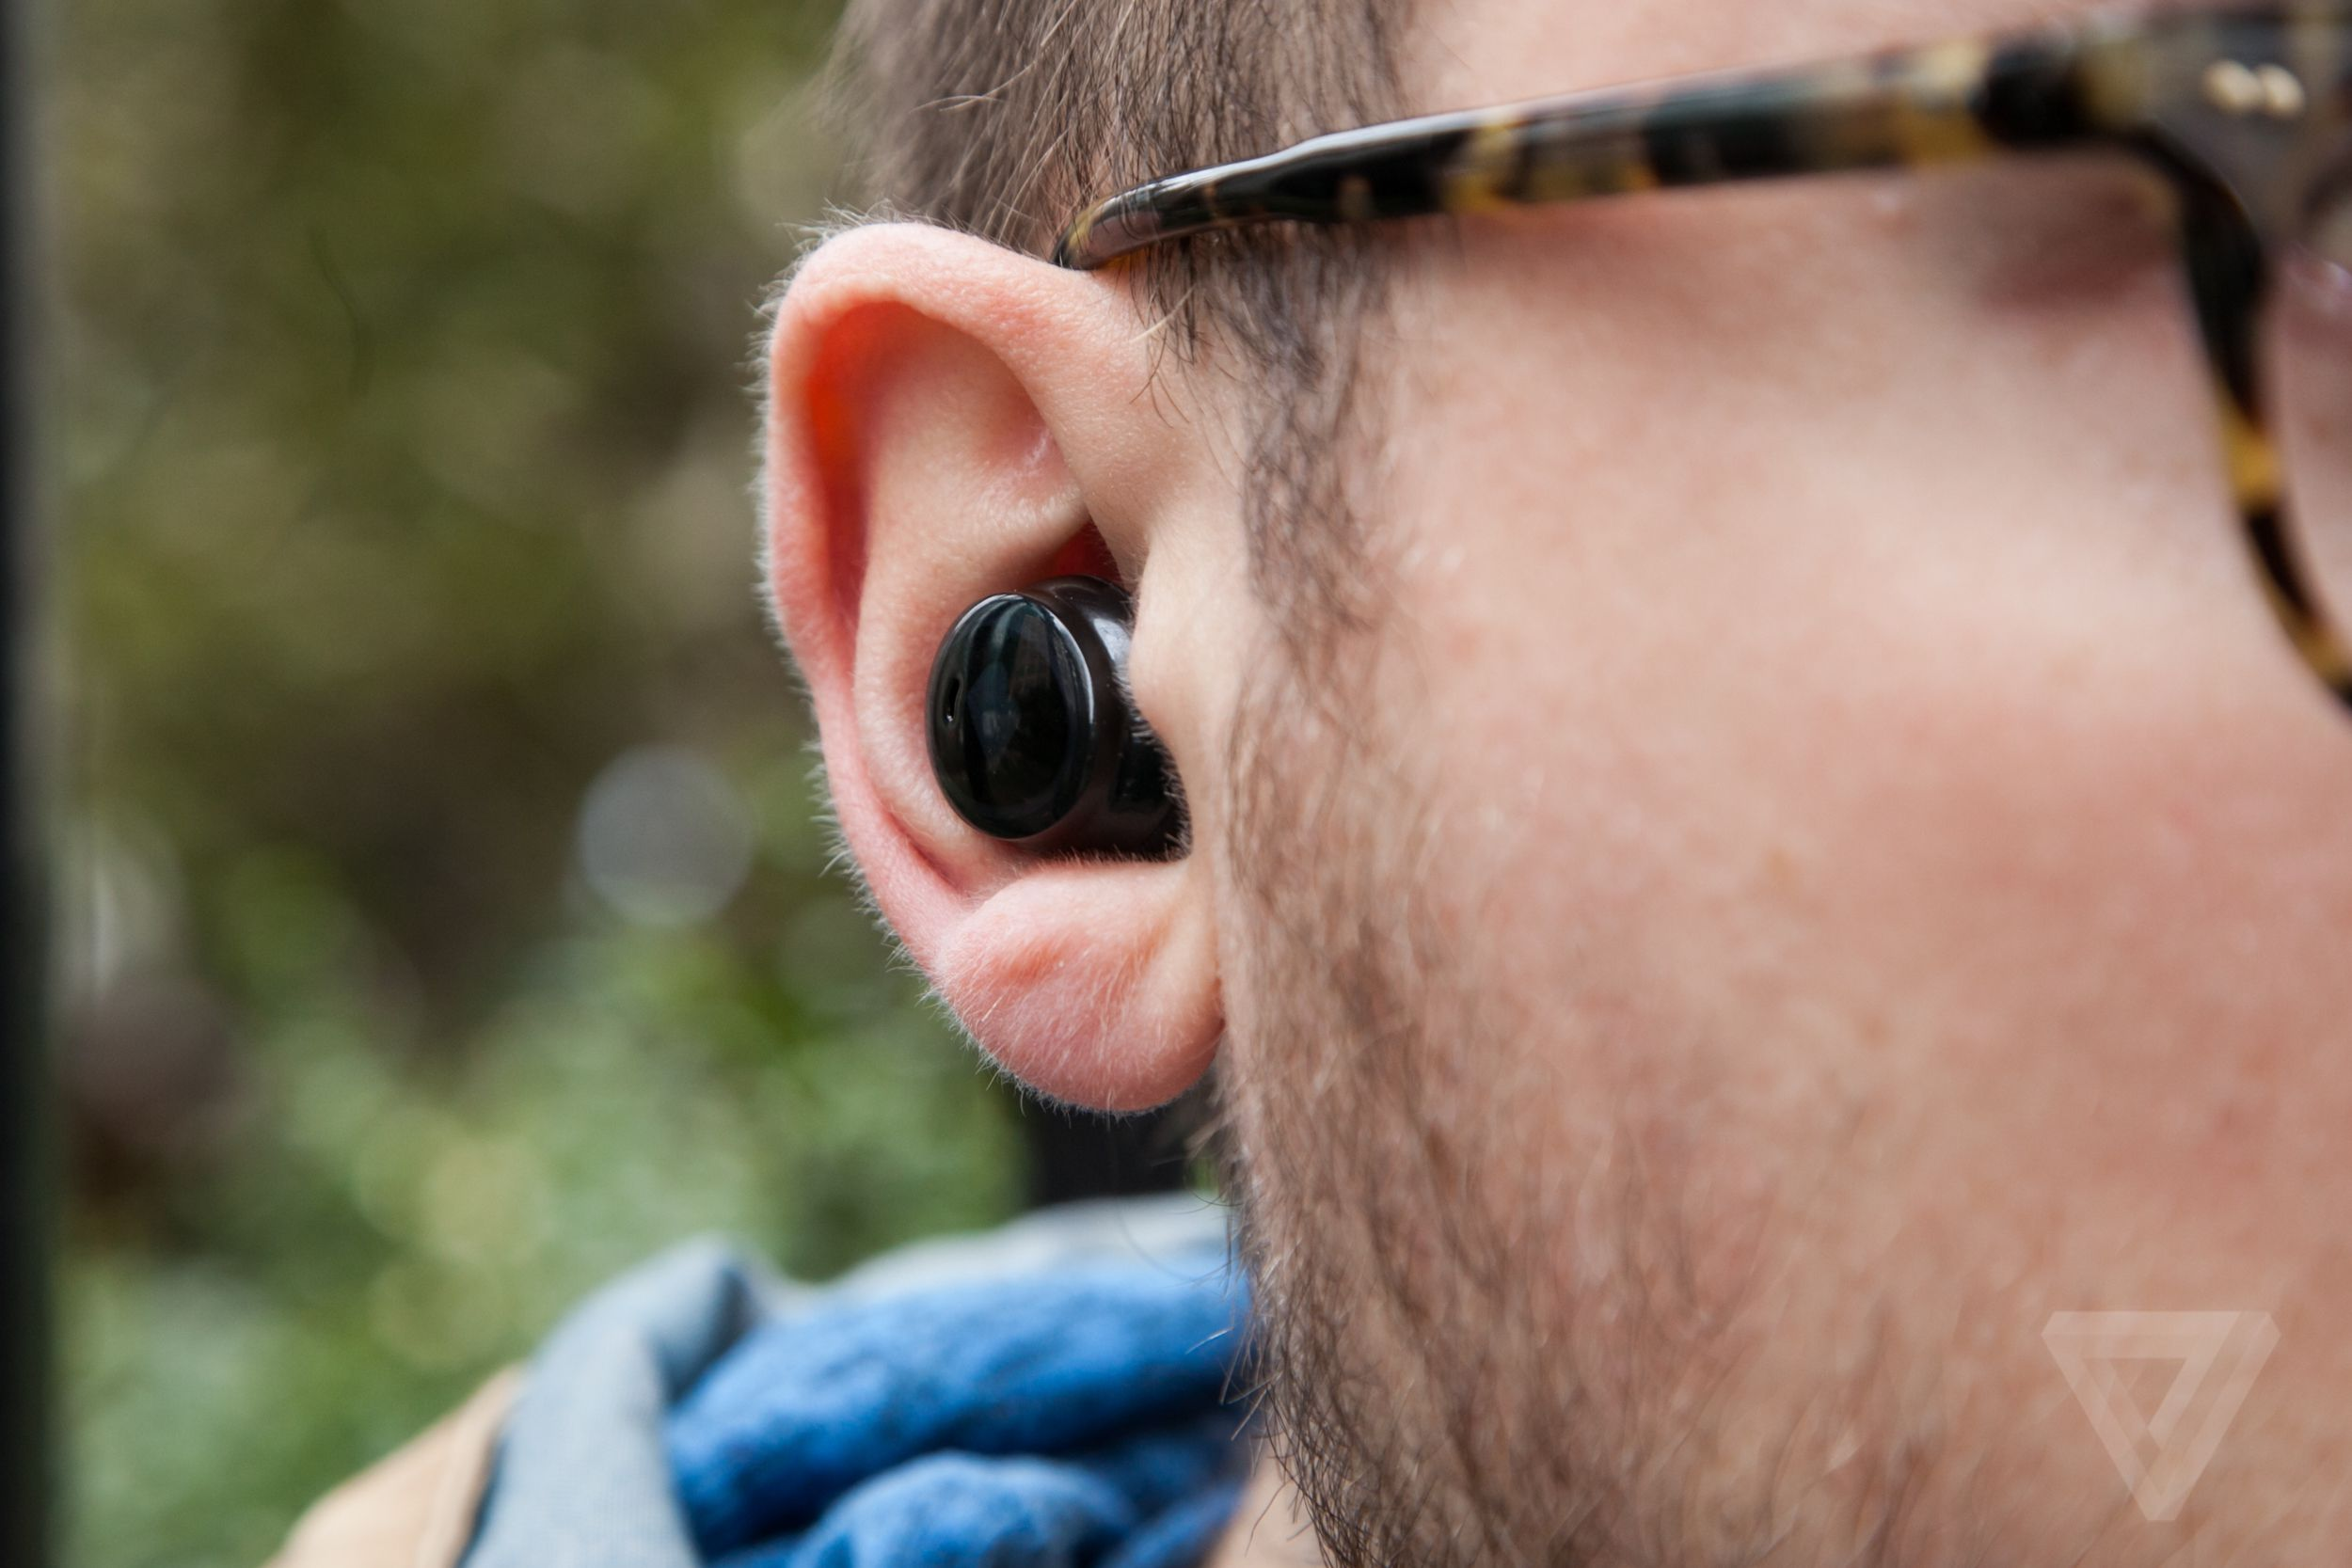 1771c3b5f44 The problem with wireless earbuds is that they're tiny and could be easy to  lose. No one wants to spend a few hundred dollars on a pair and wind up  losing ...